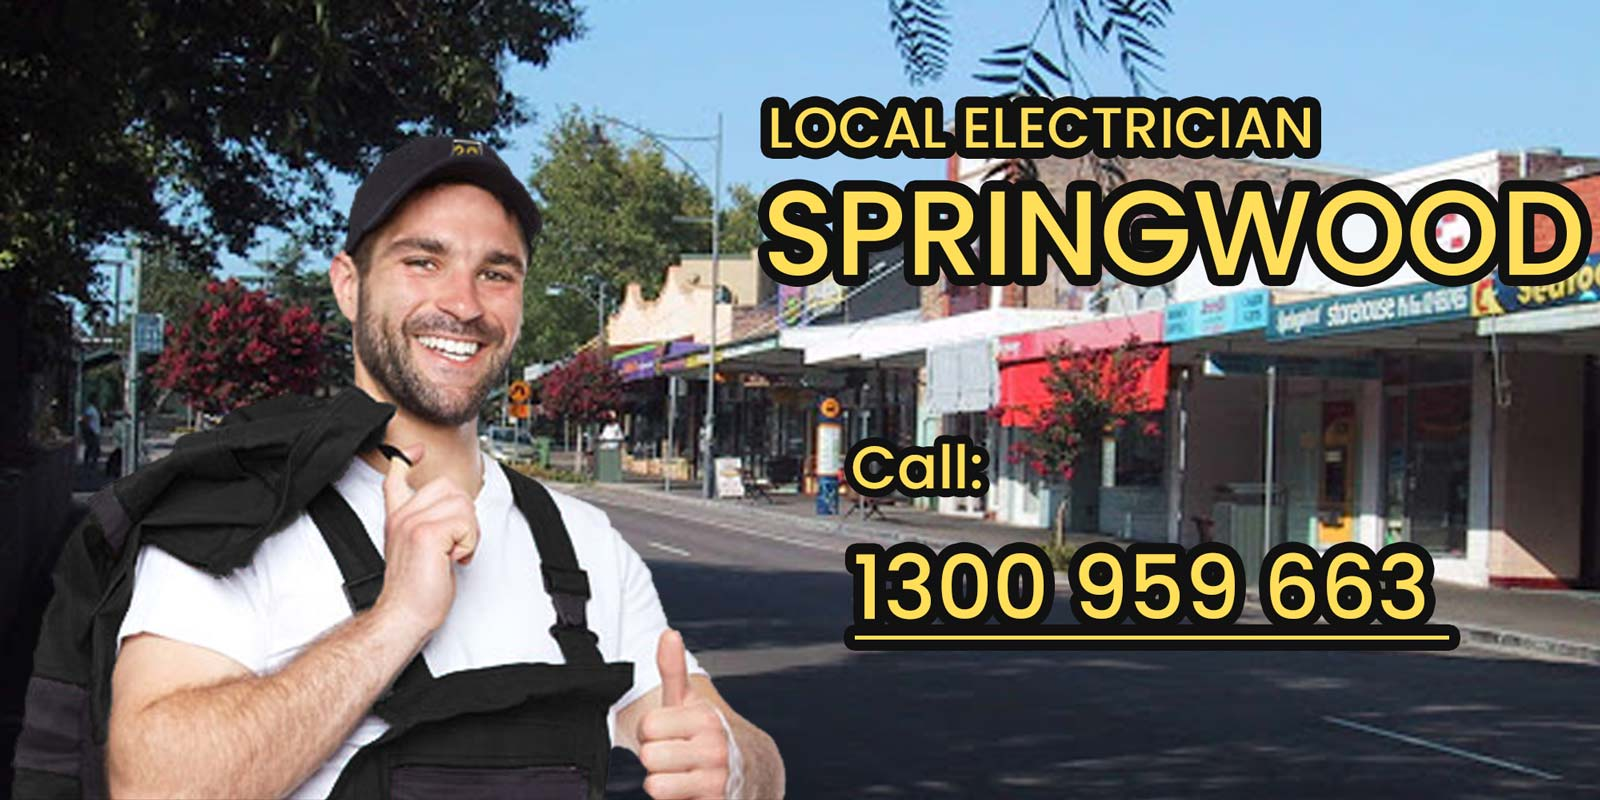 Electrician Springwood NSW | Response & Reliable